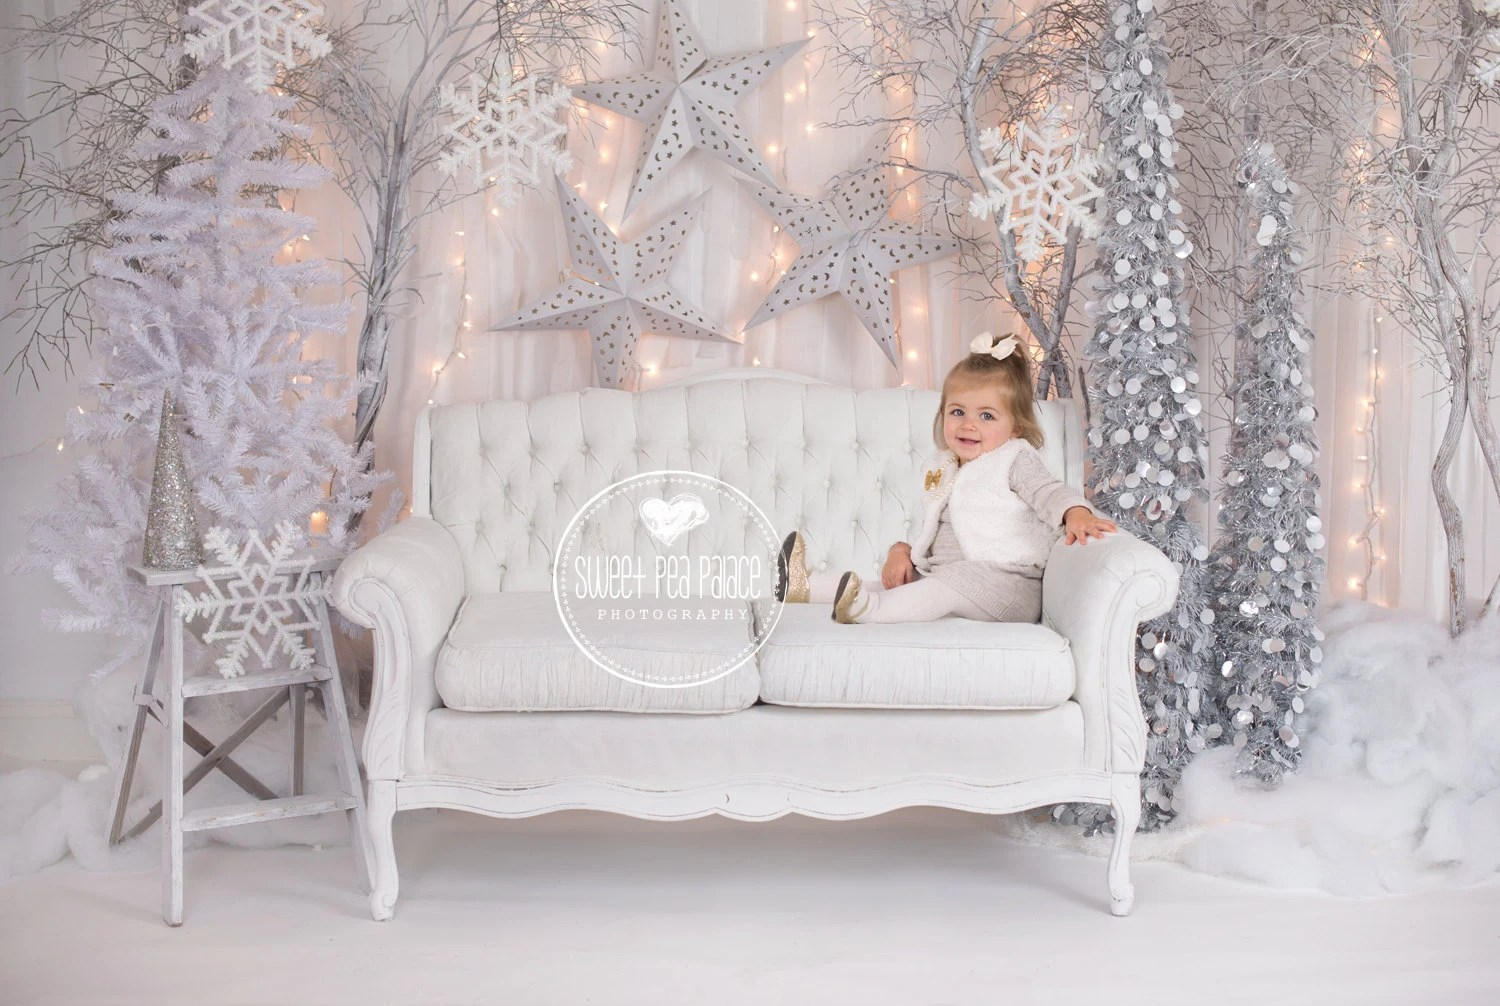 Amit Name Wallpaper Hd Instant Downloadbaby Toddler Child Photography Prop Digital